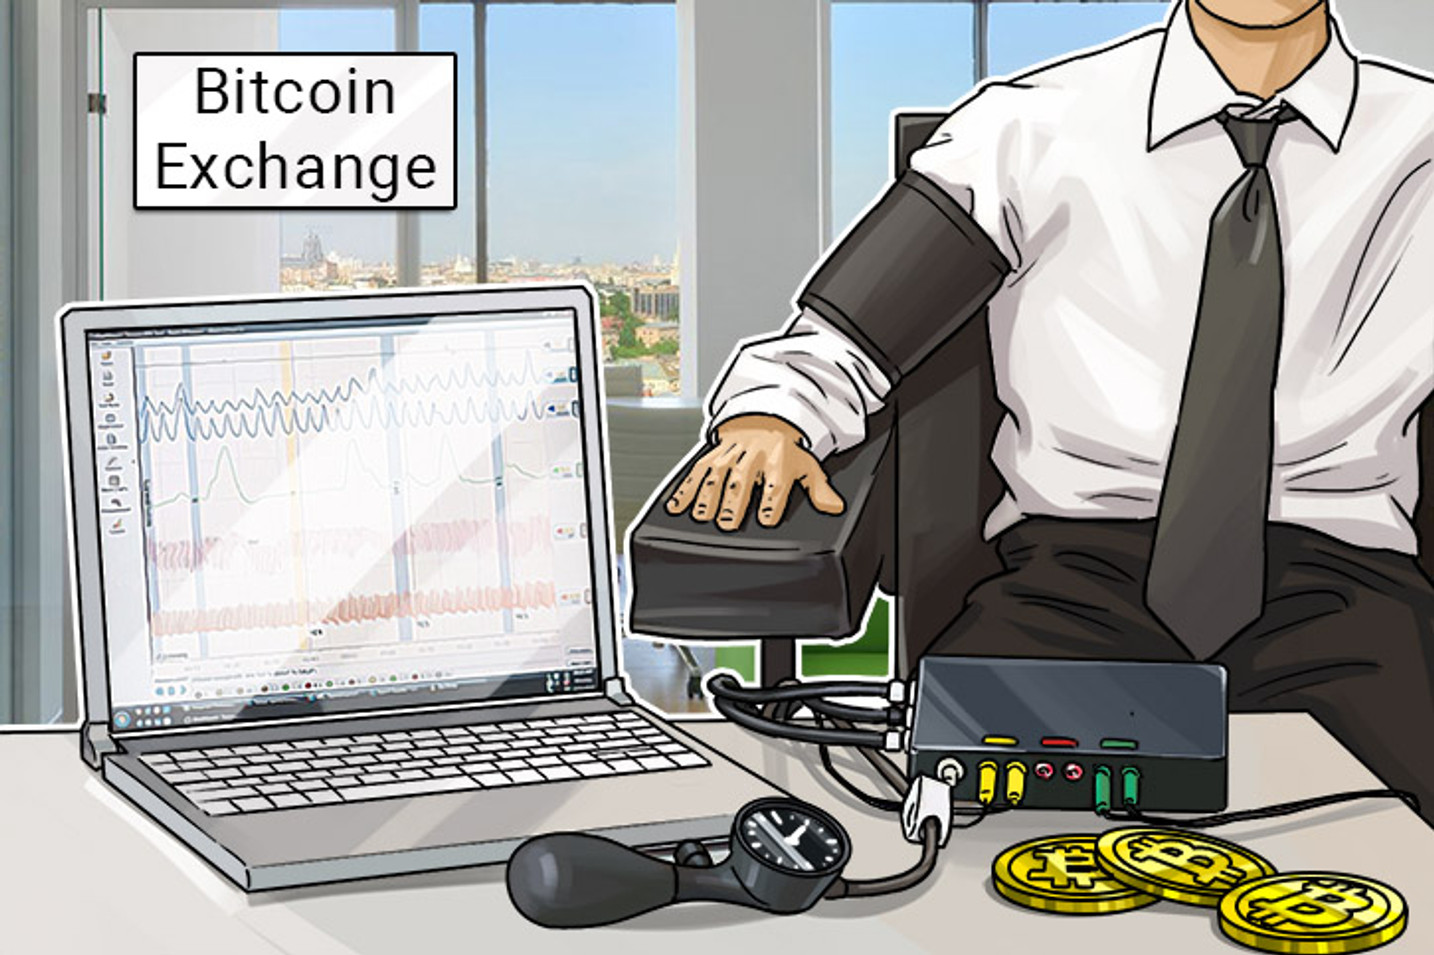 Chinese Bitcoin Exchanges Demand Users to Explain Sources of Funds